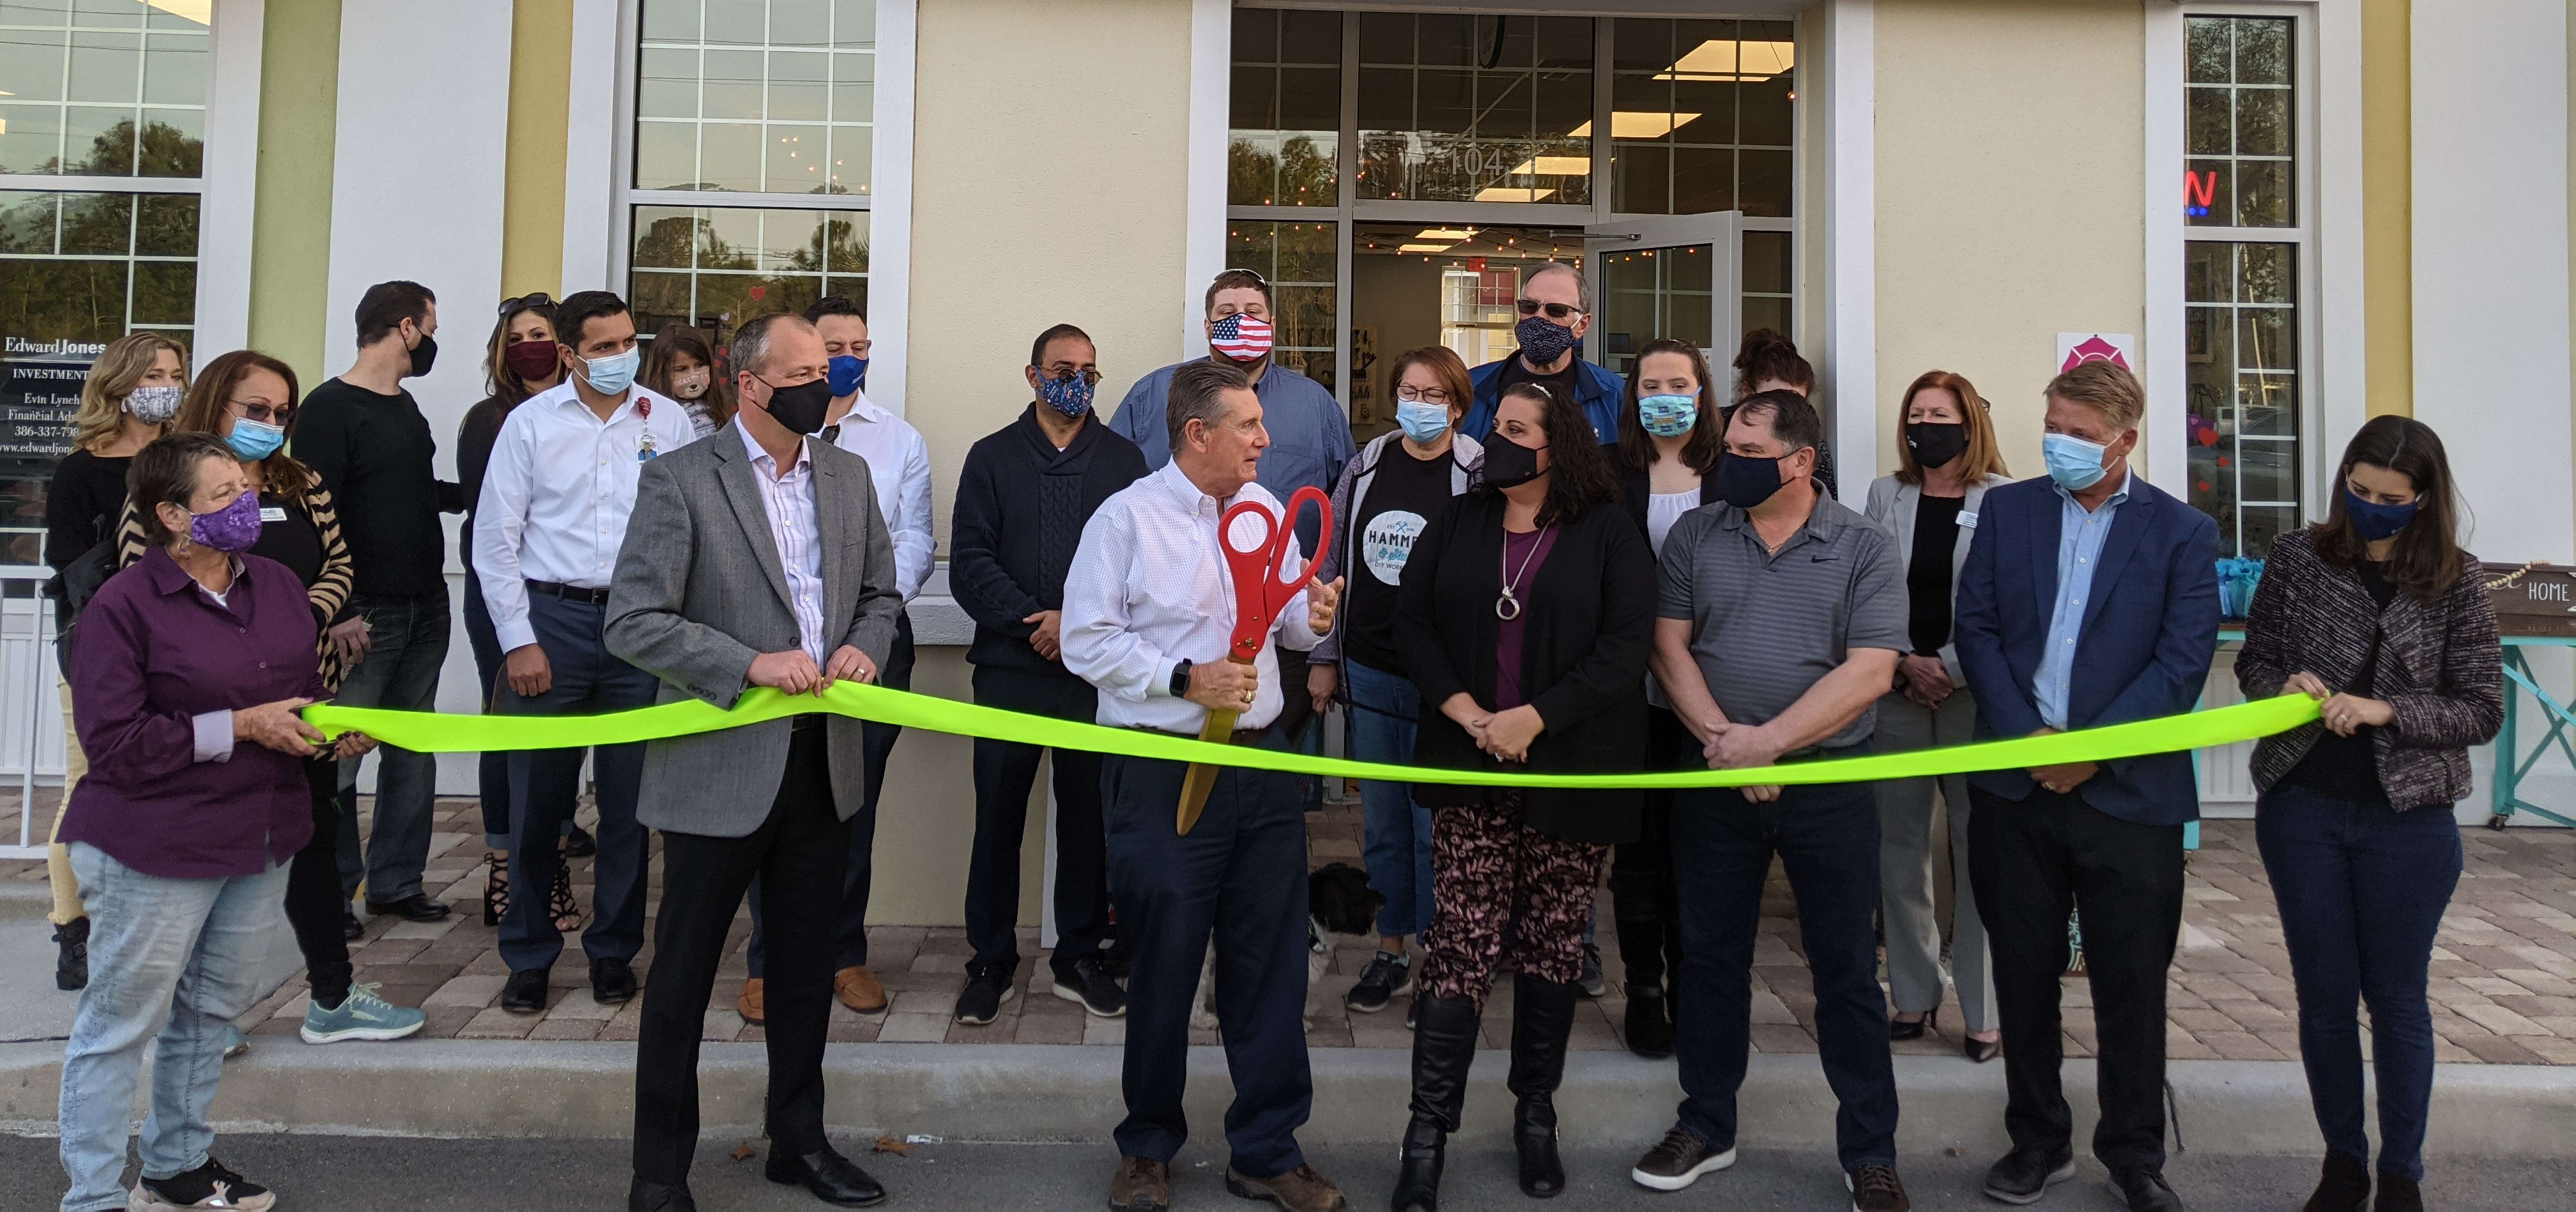 Hammer-and-Stain-Ribbon-Cutting-February-2021-w4032.jpg